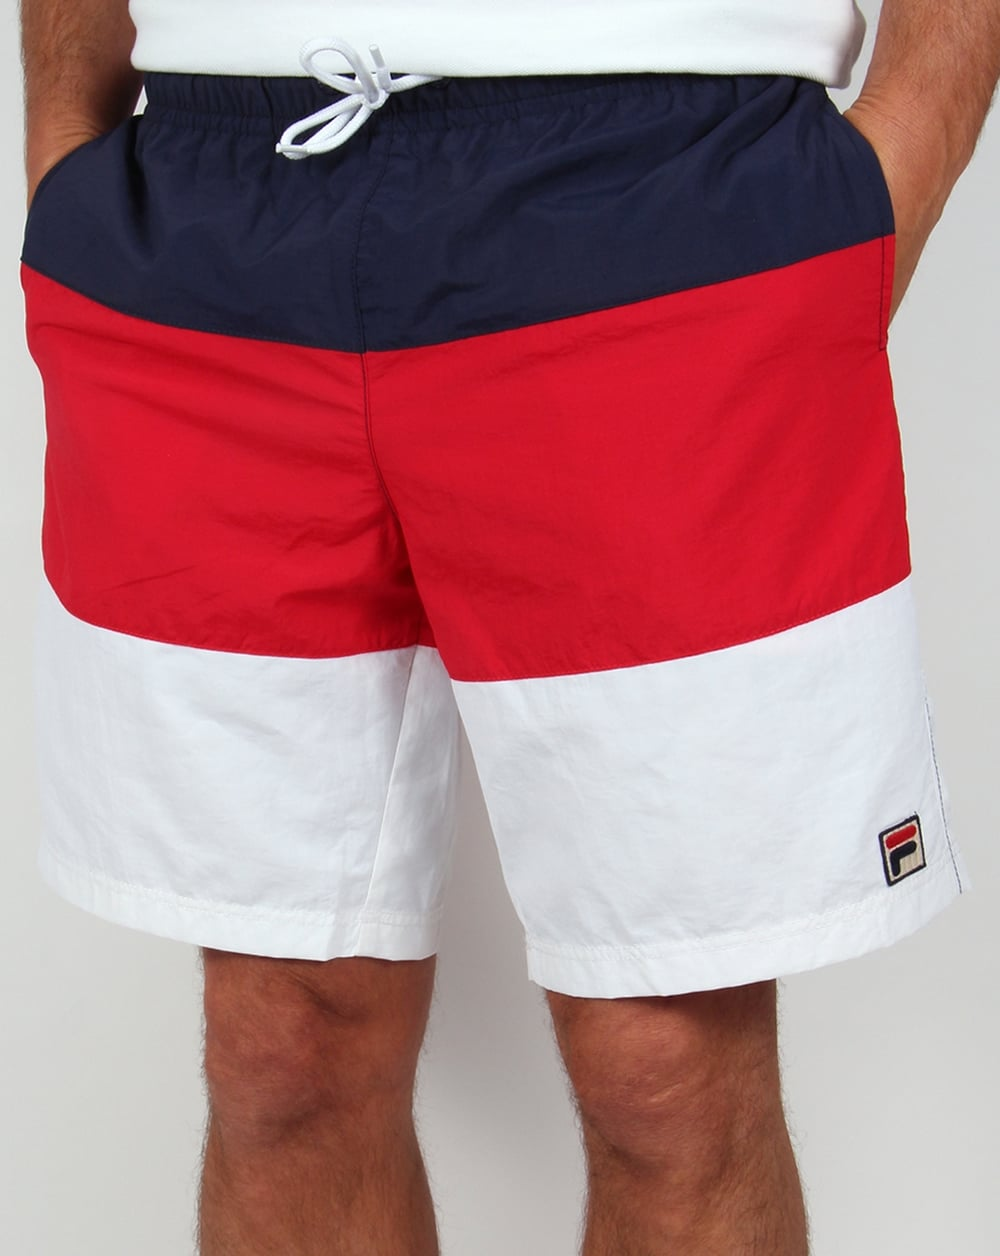 Fila Vintage Beam Beach Shorts Red  White  Navy Swimmers